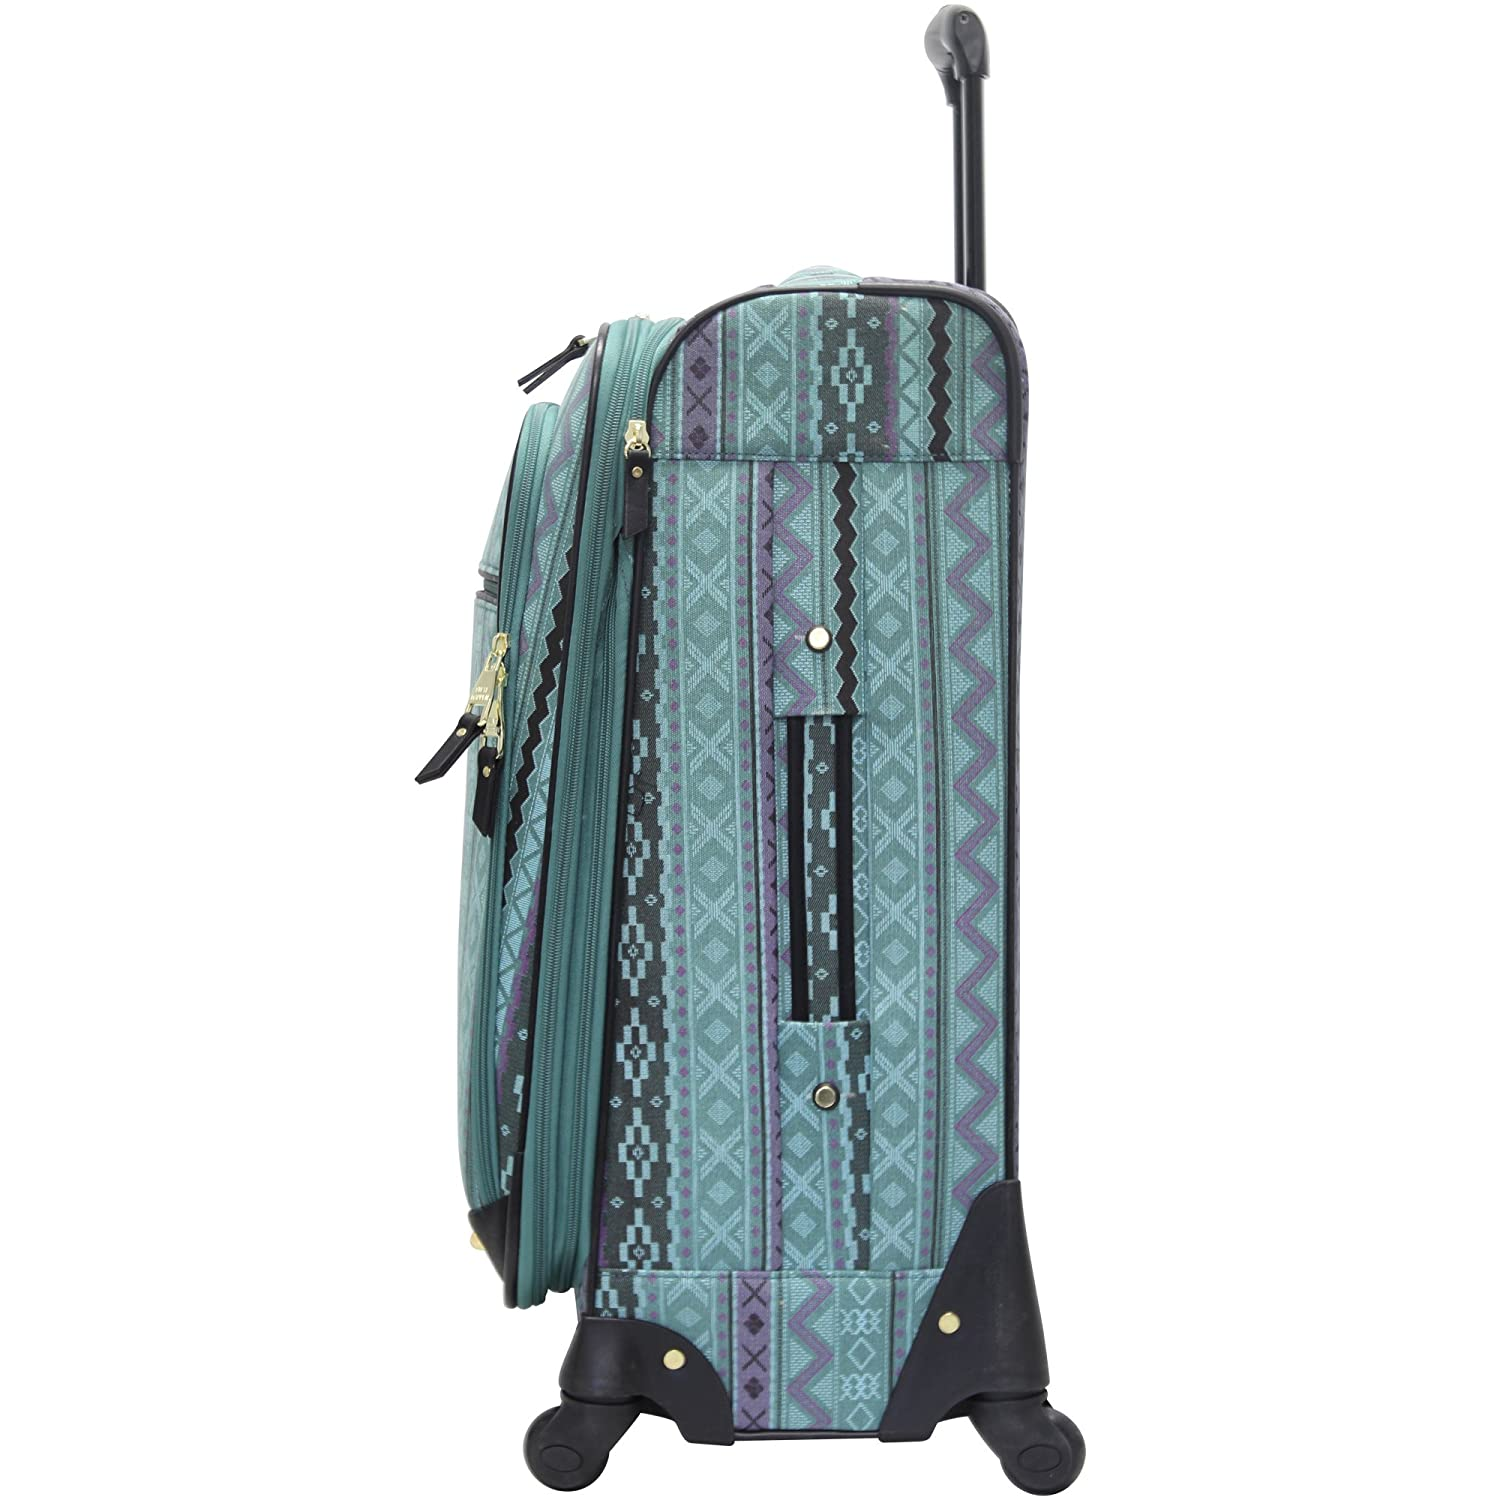 Steve Madden Luggage 3 Piece Softside Spinner Suitcase Set Collection Legends Turquoise